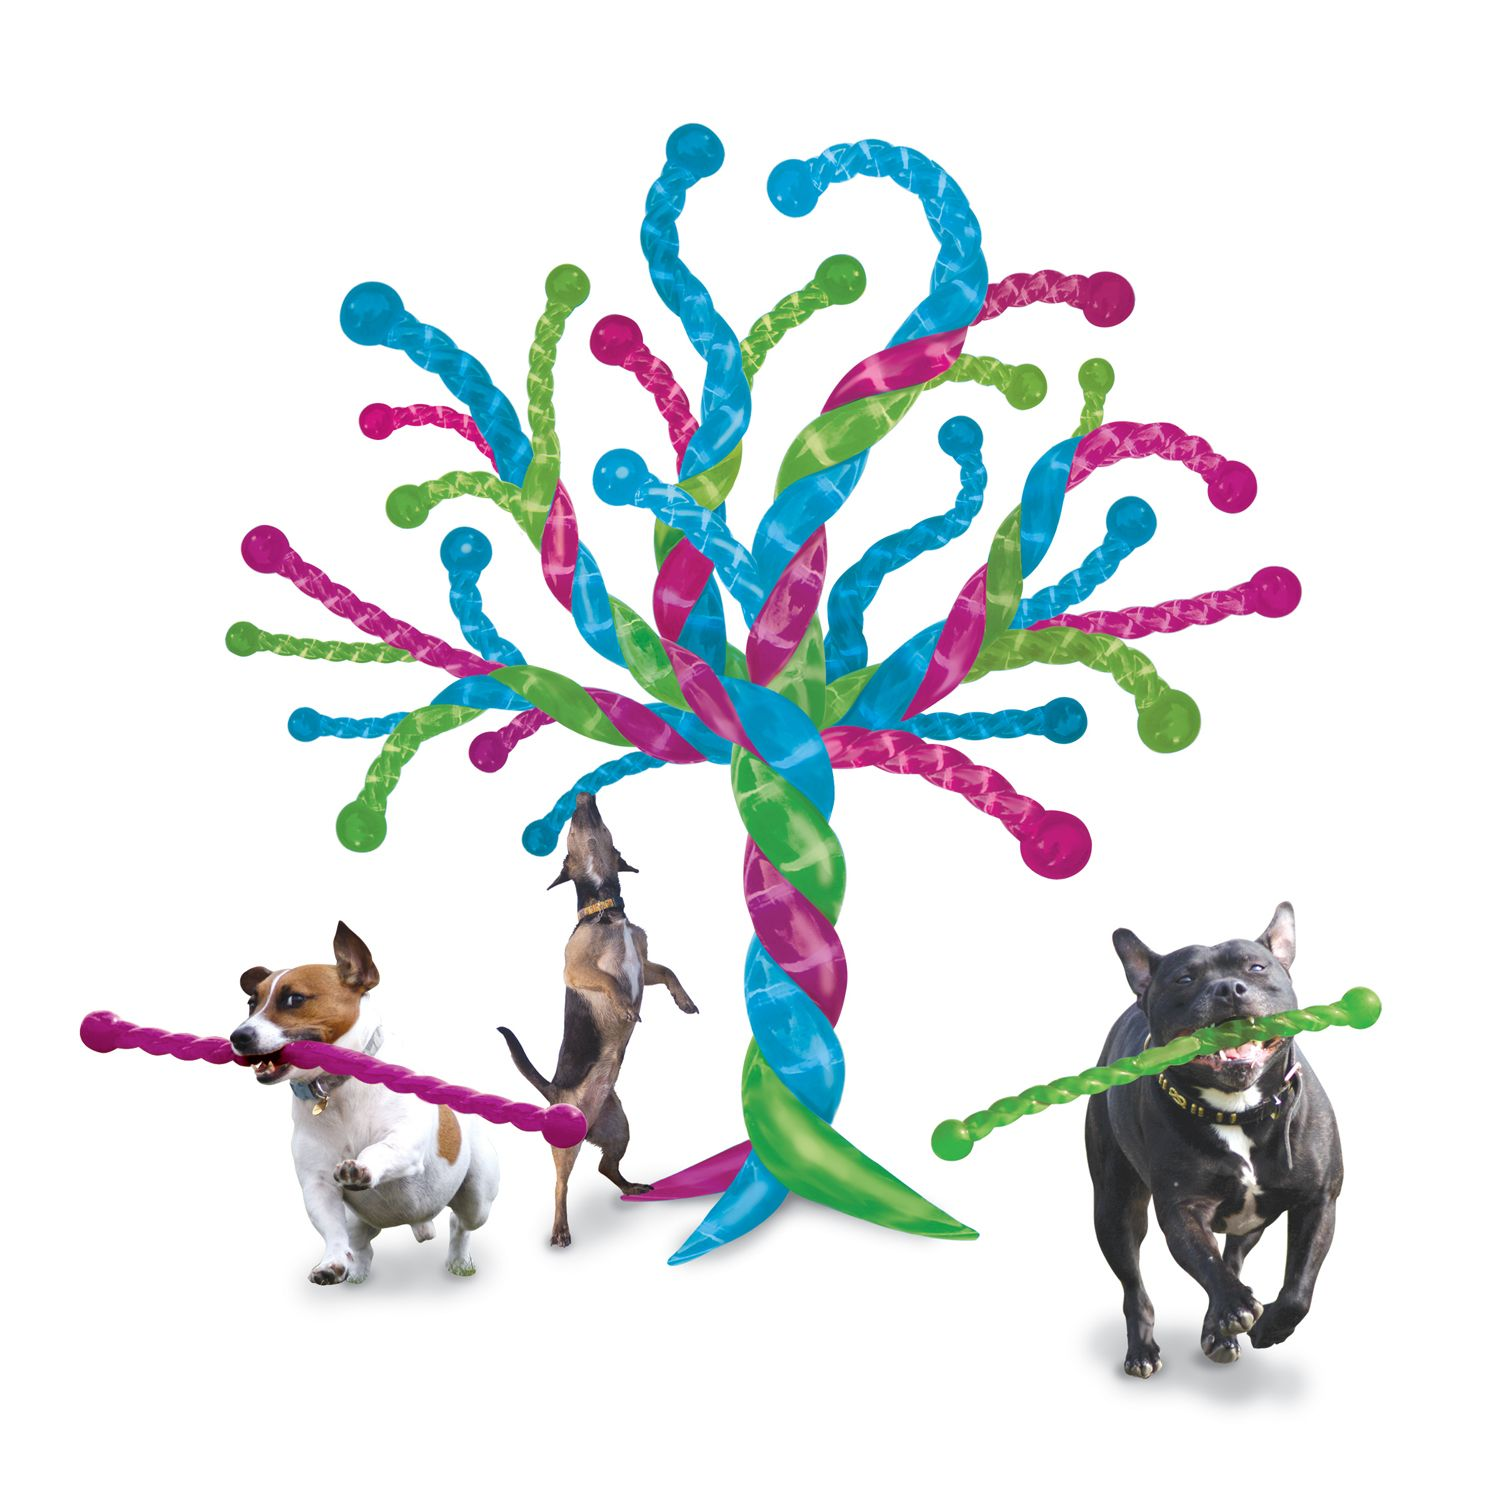 If dog toys started growing on trees #adogsdream